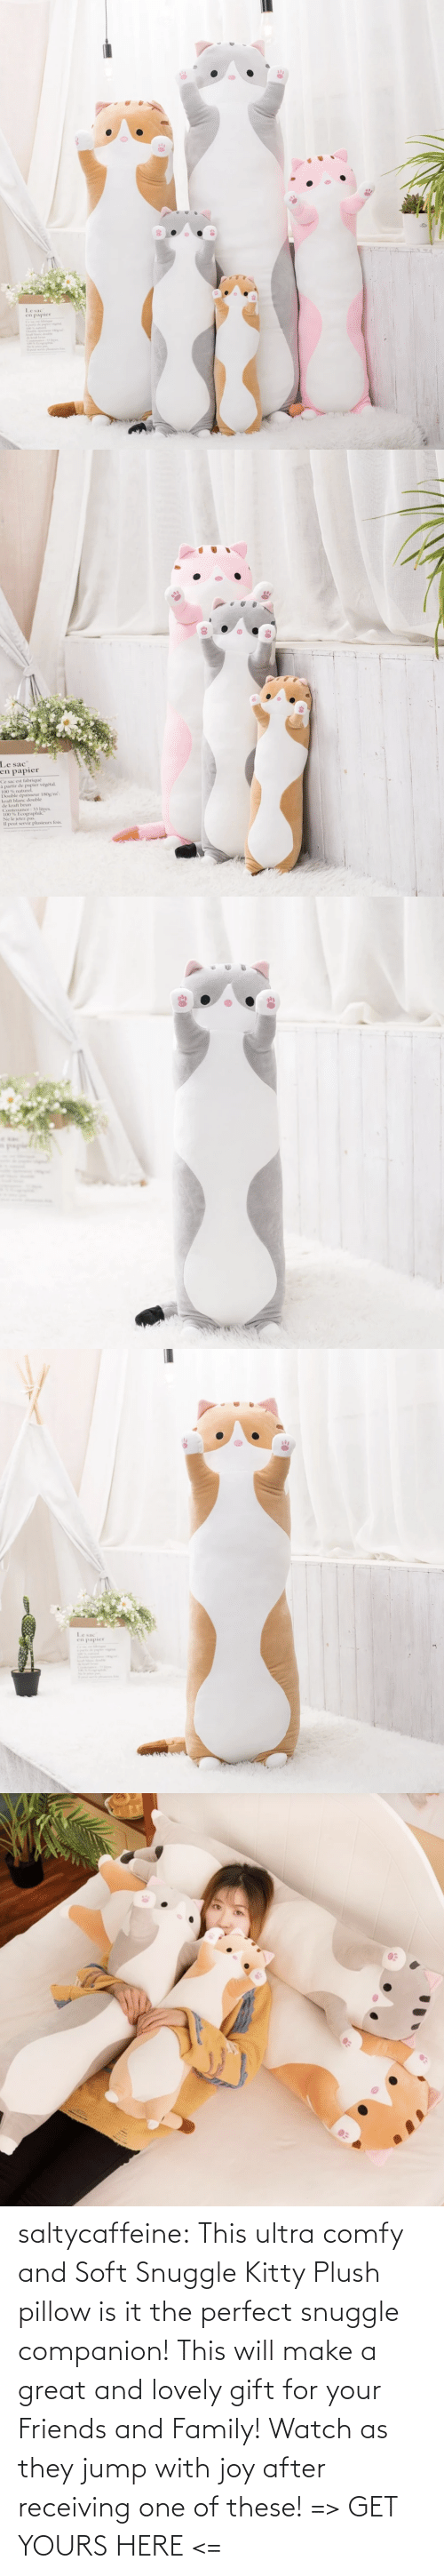 yours: saltycaffeine: This ultra comfy and Soft Snuggle Kitty Plush pillow is it the perfect snuggle companion! This will make a great and lovely gift for your Friends and Family! Watch as they jump with joy after receiving one of these! => GET YOURS HERE <=